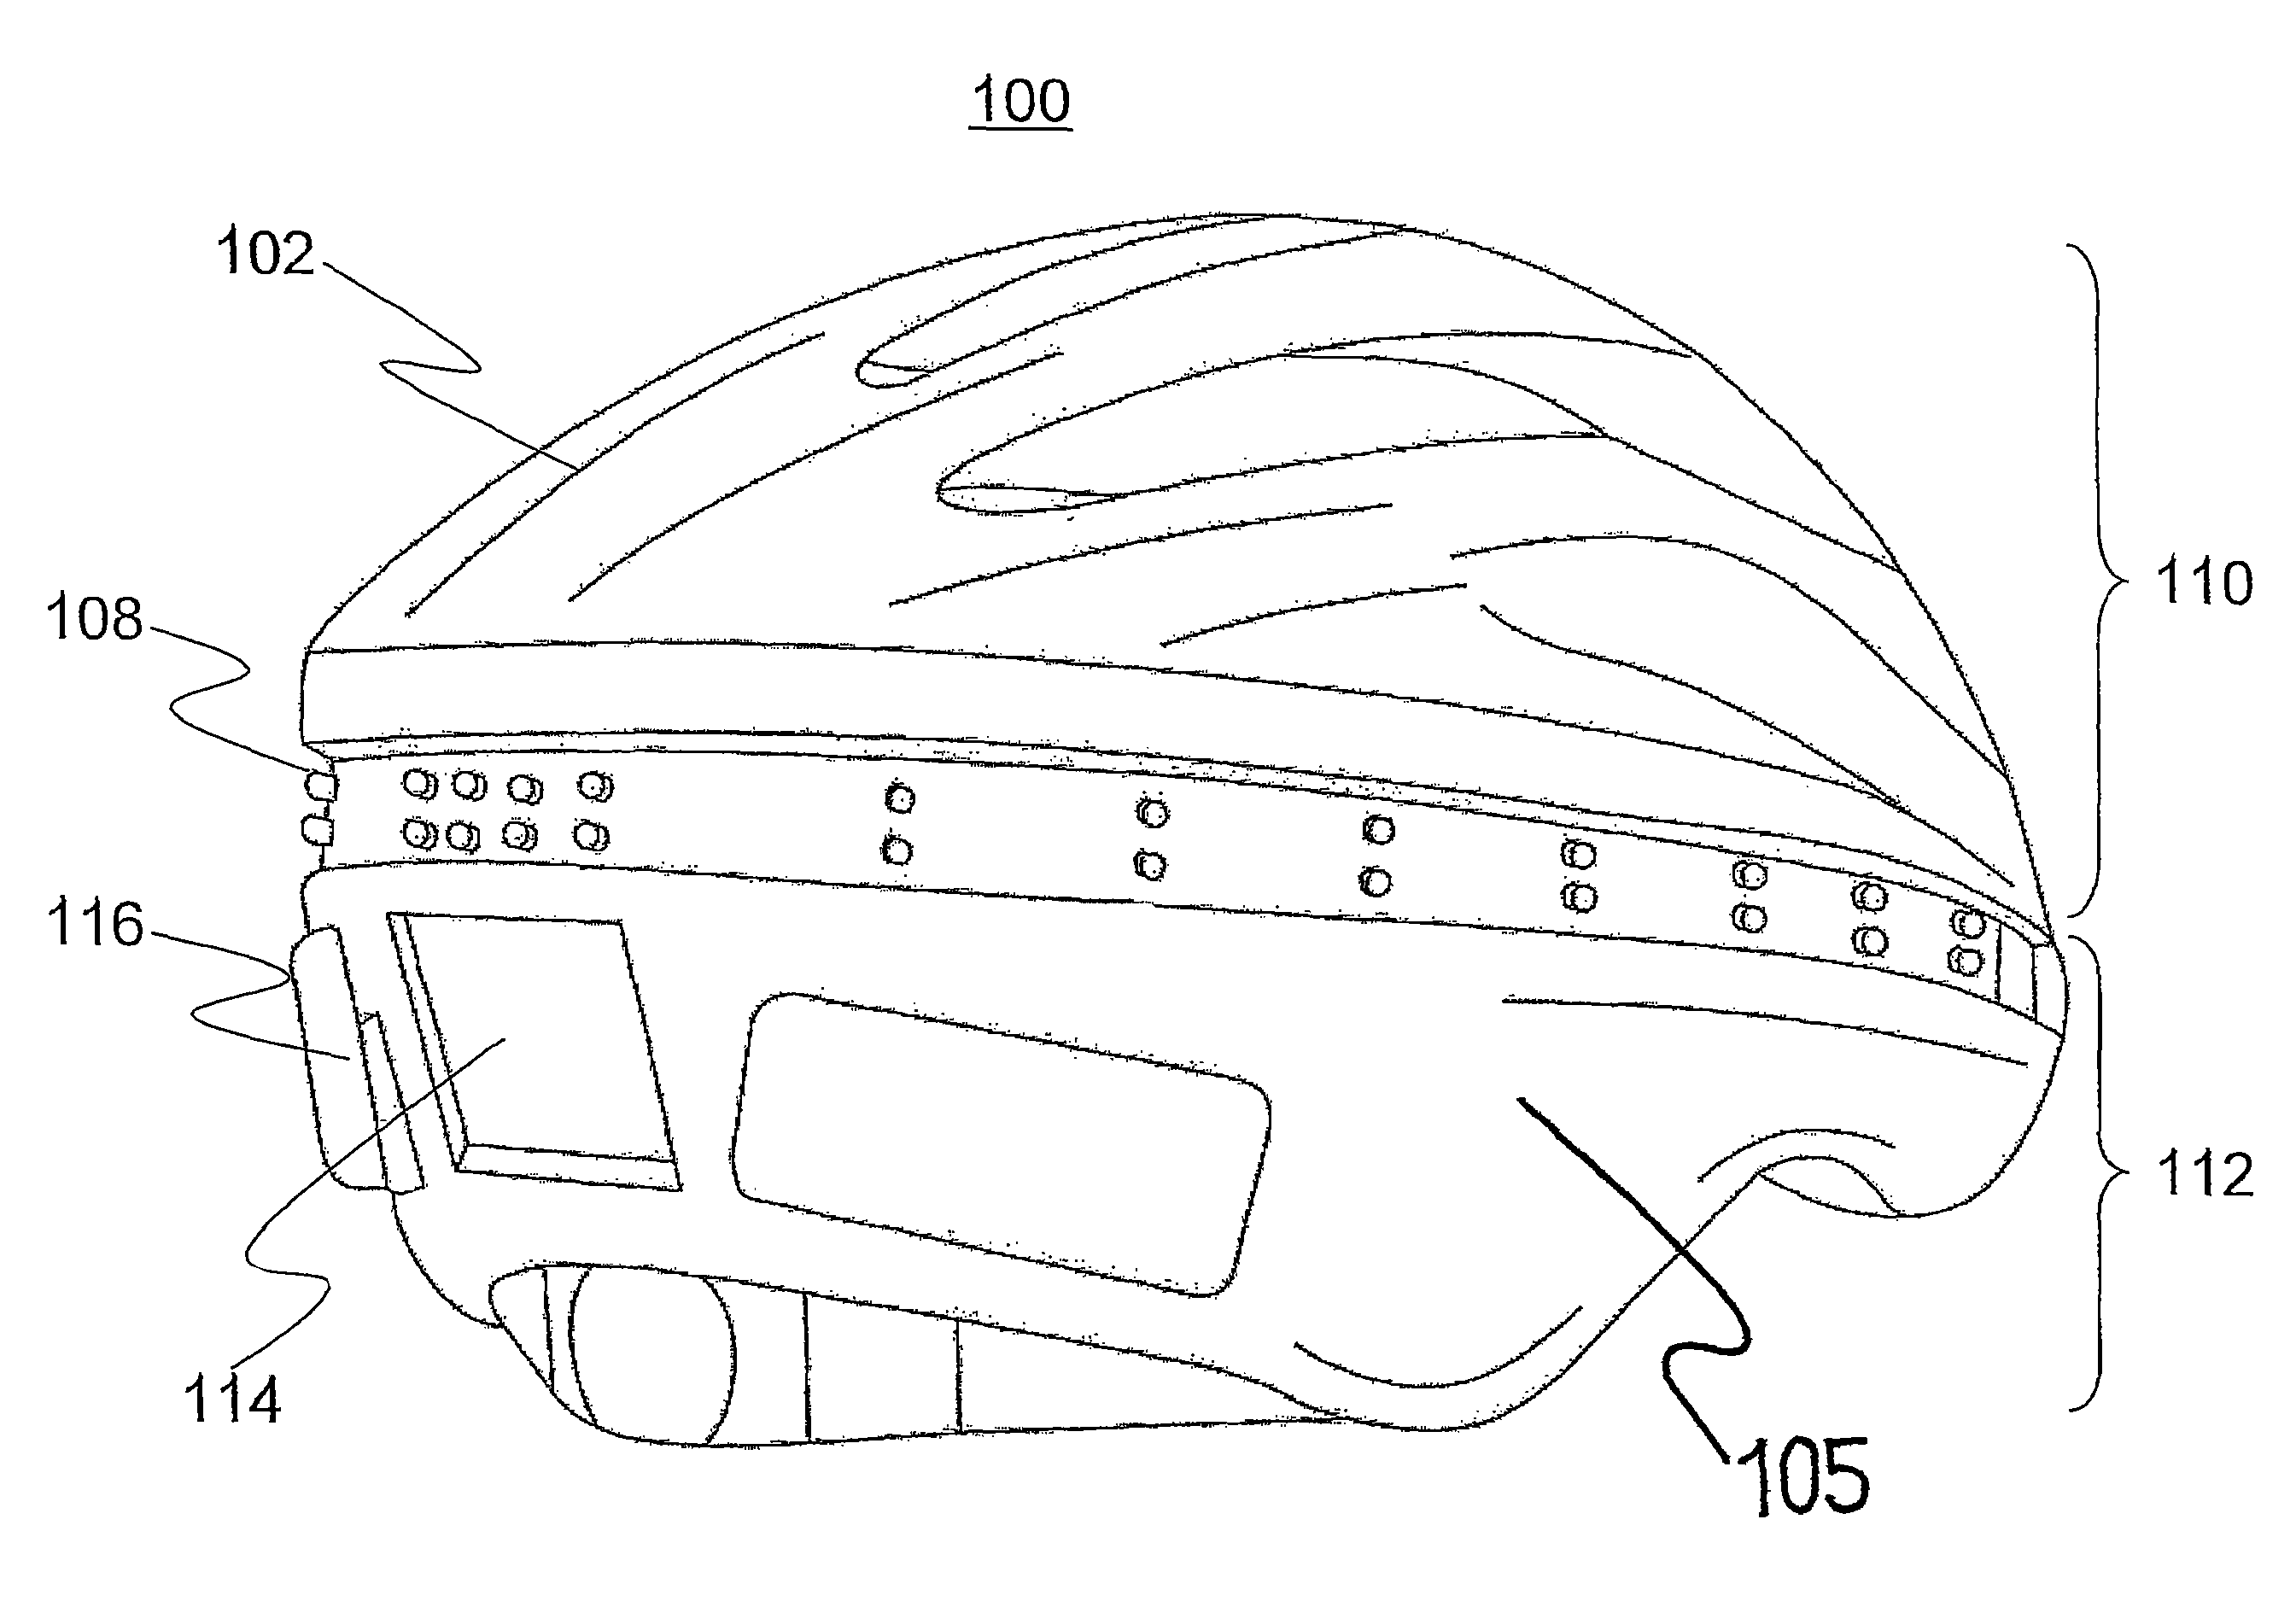 Us8157402 Illuminated Helmet With Programmable Wiring A Light Motion Sensor Free Download Diagrams Pictures Patent Drawing